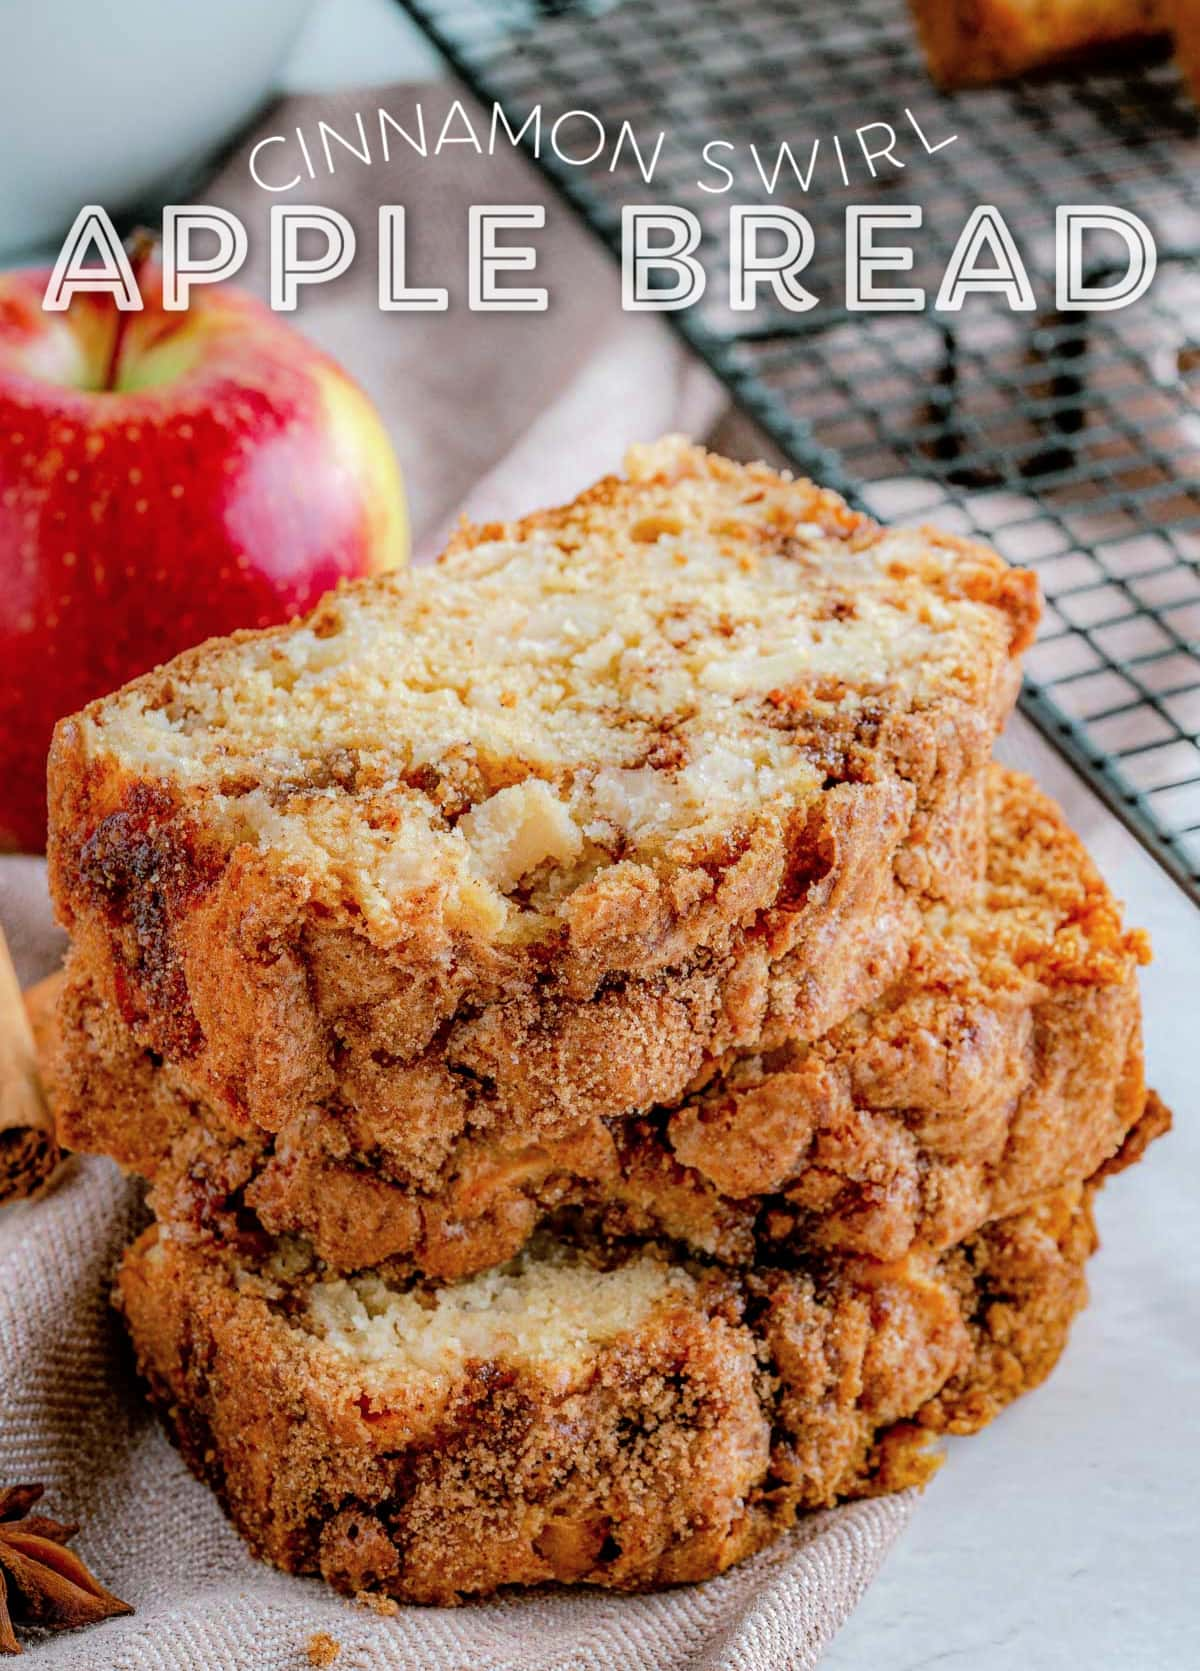 three slices of apple bread stacked next to a cooling rack with an whole red apple in background. title overlay at top of image.